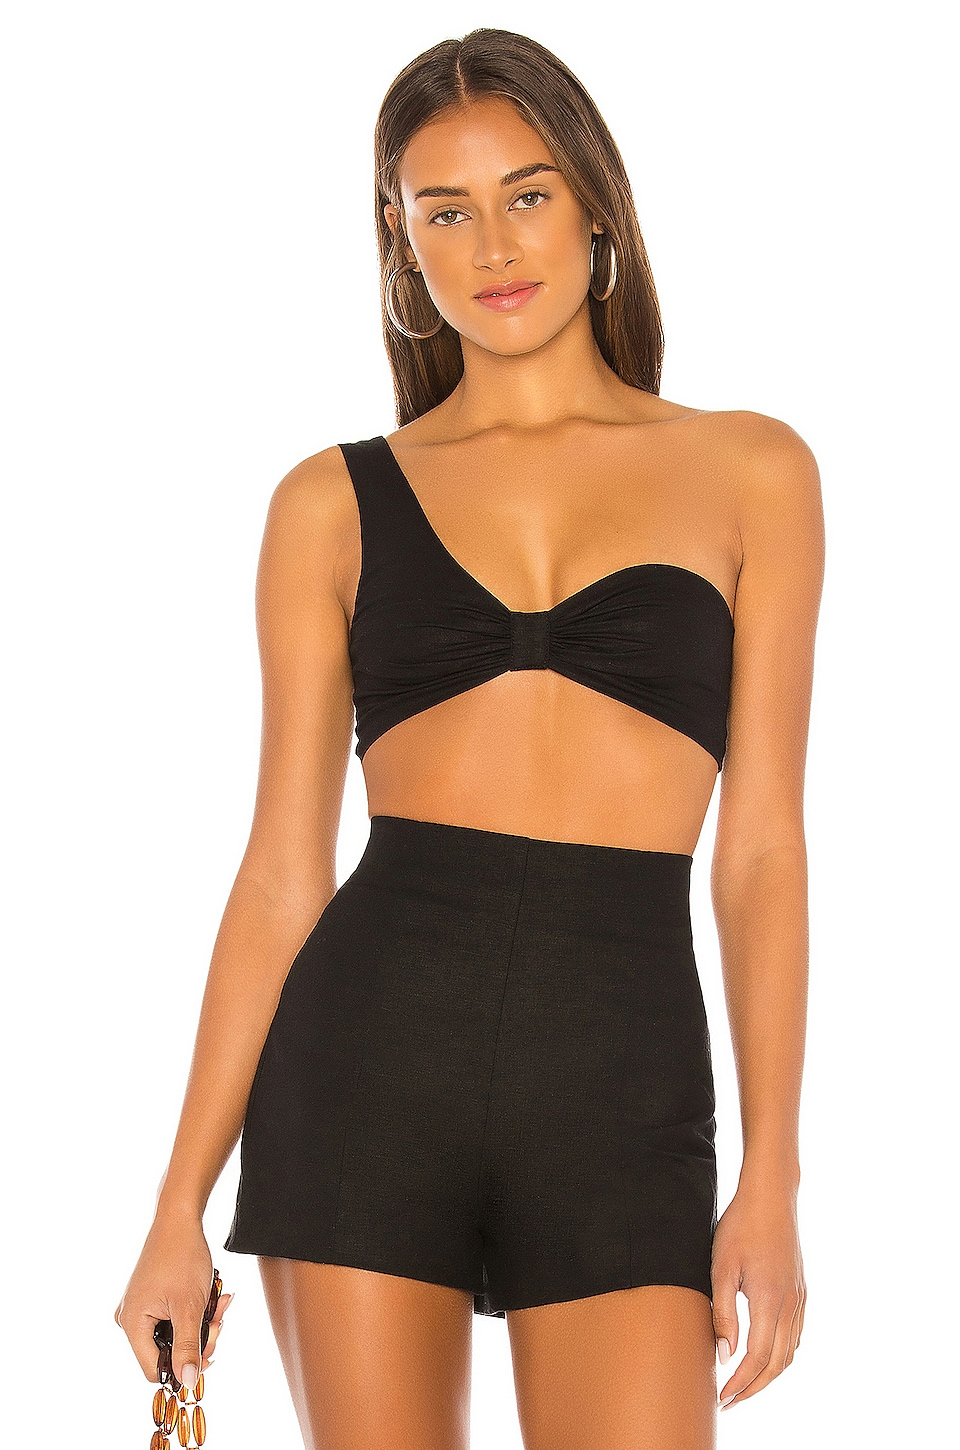 MAJORELLE Tallahassee Top in Black